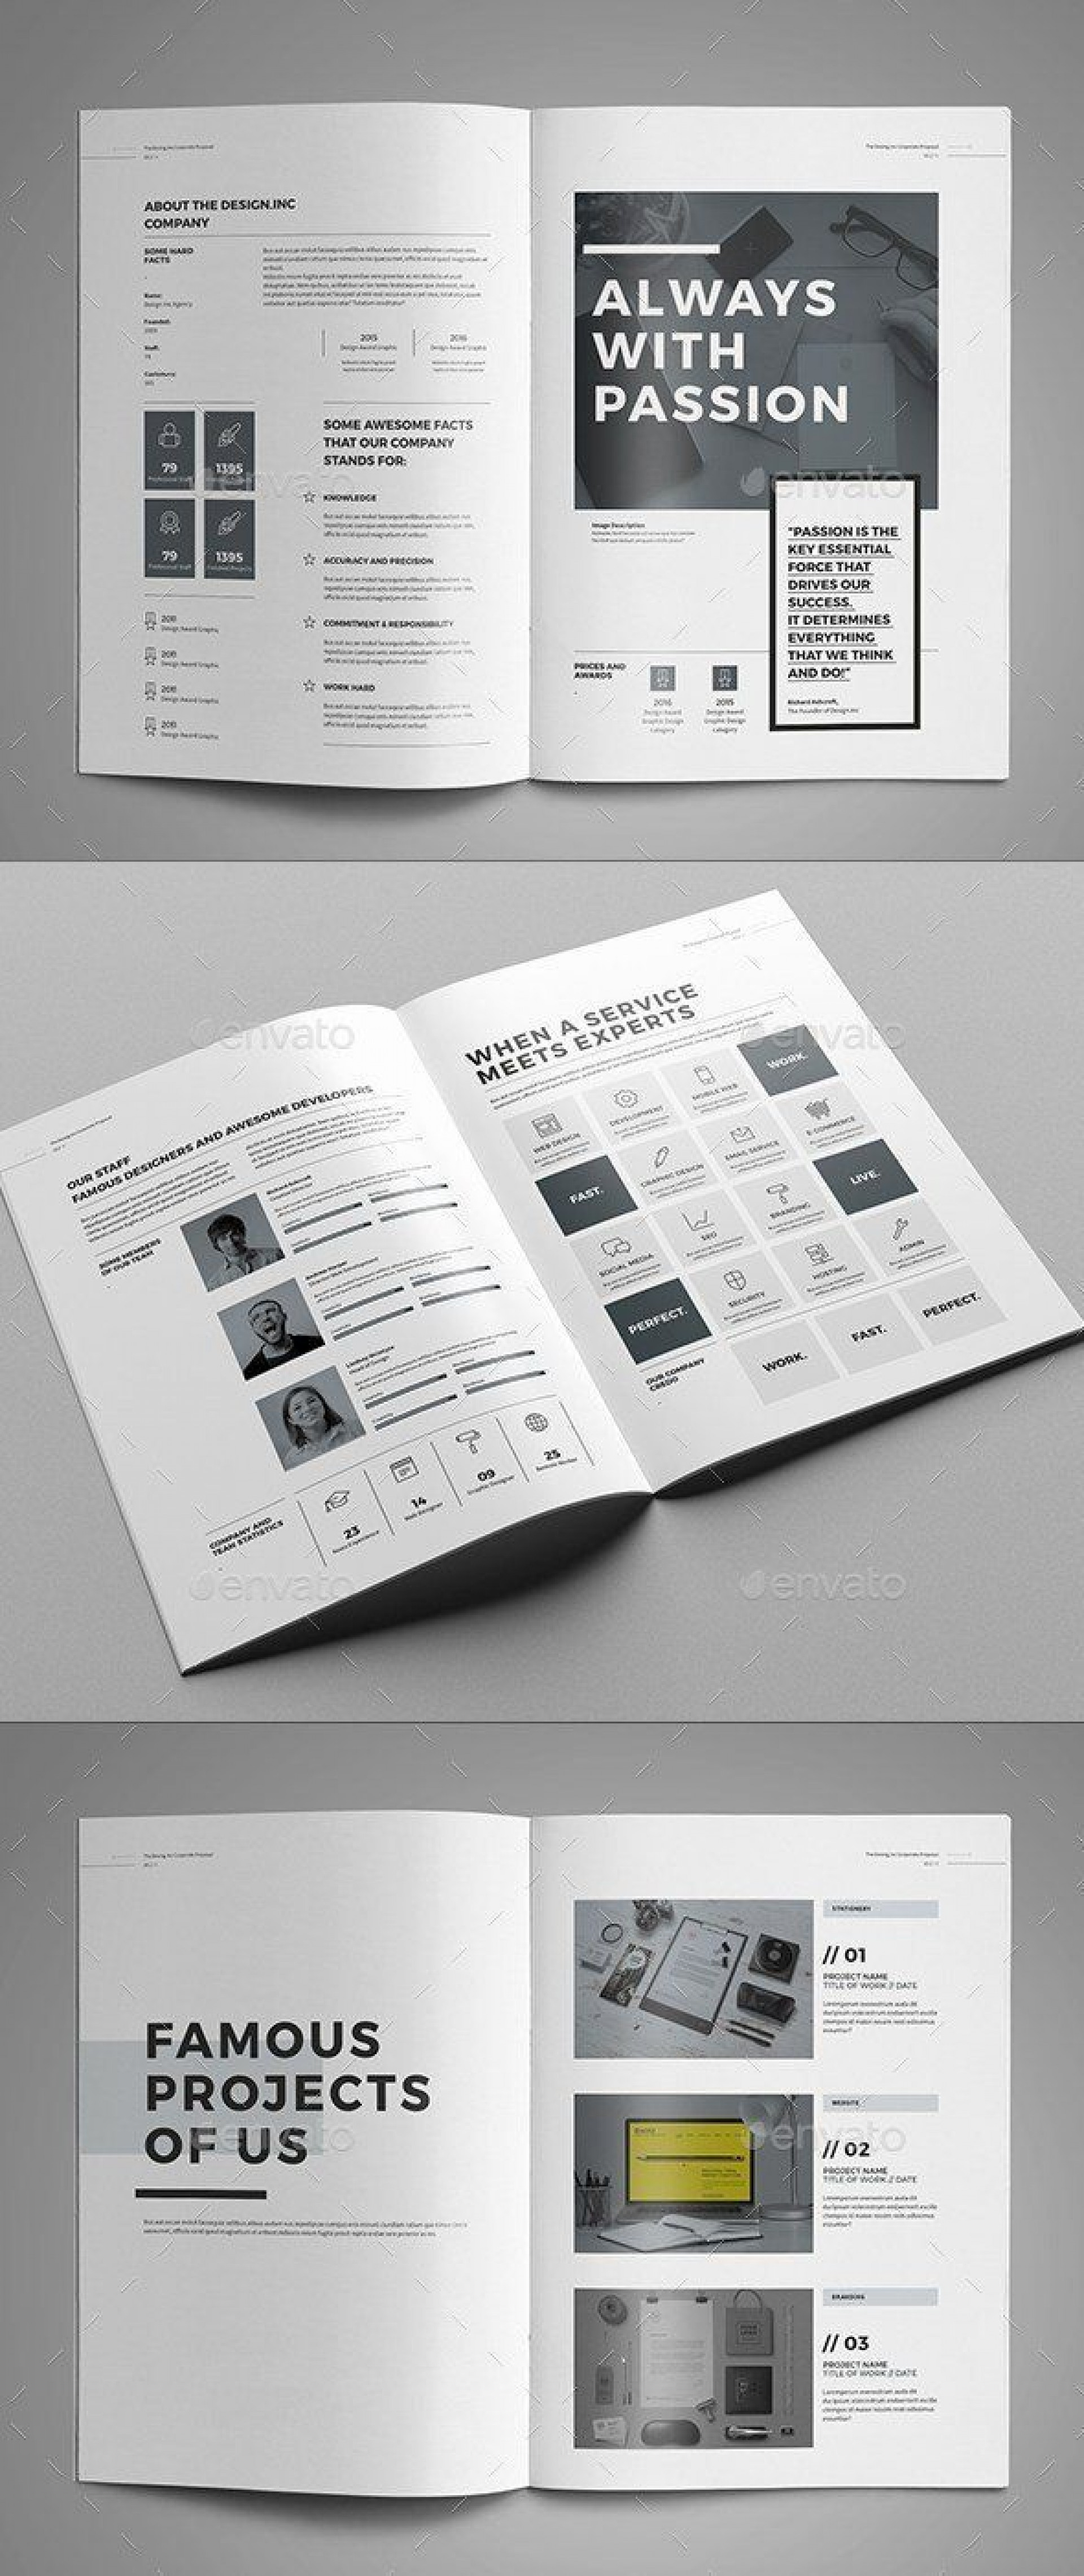 005 Amazing Web Design Proposal Template Indesign High Resolution 1920